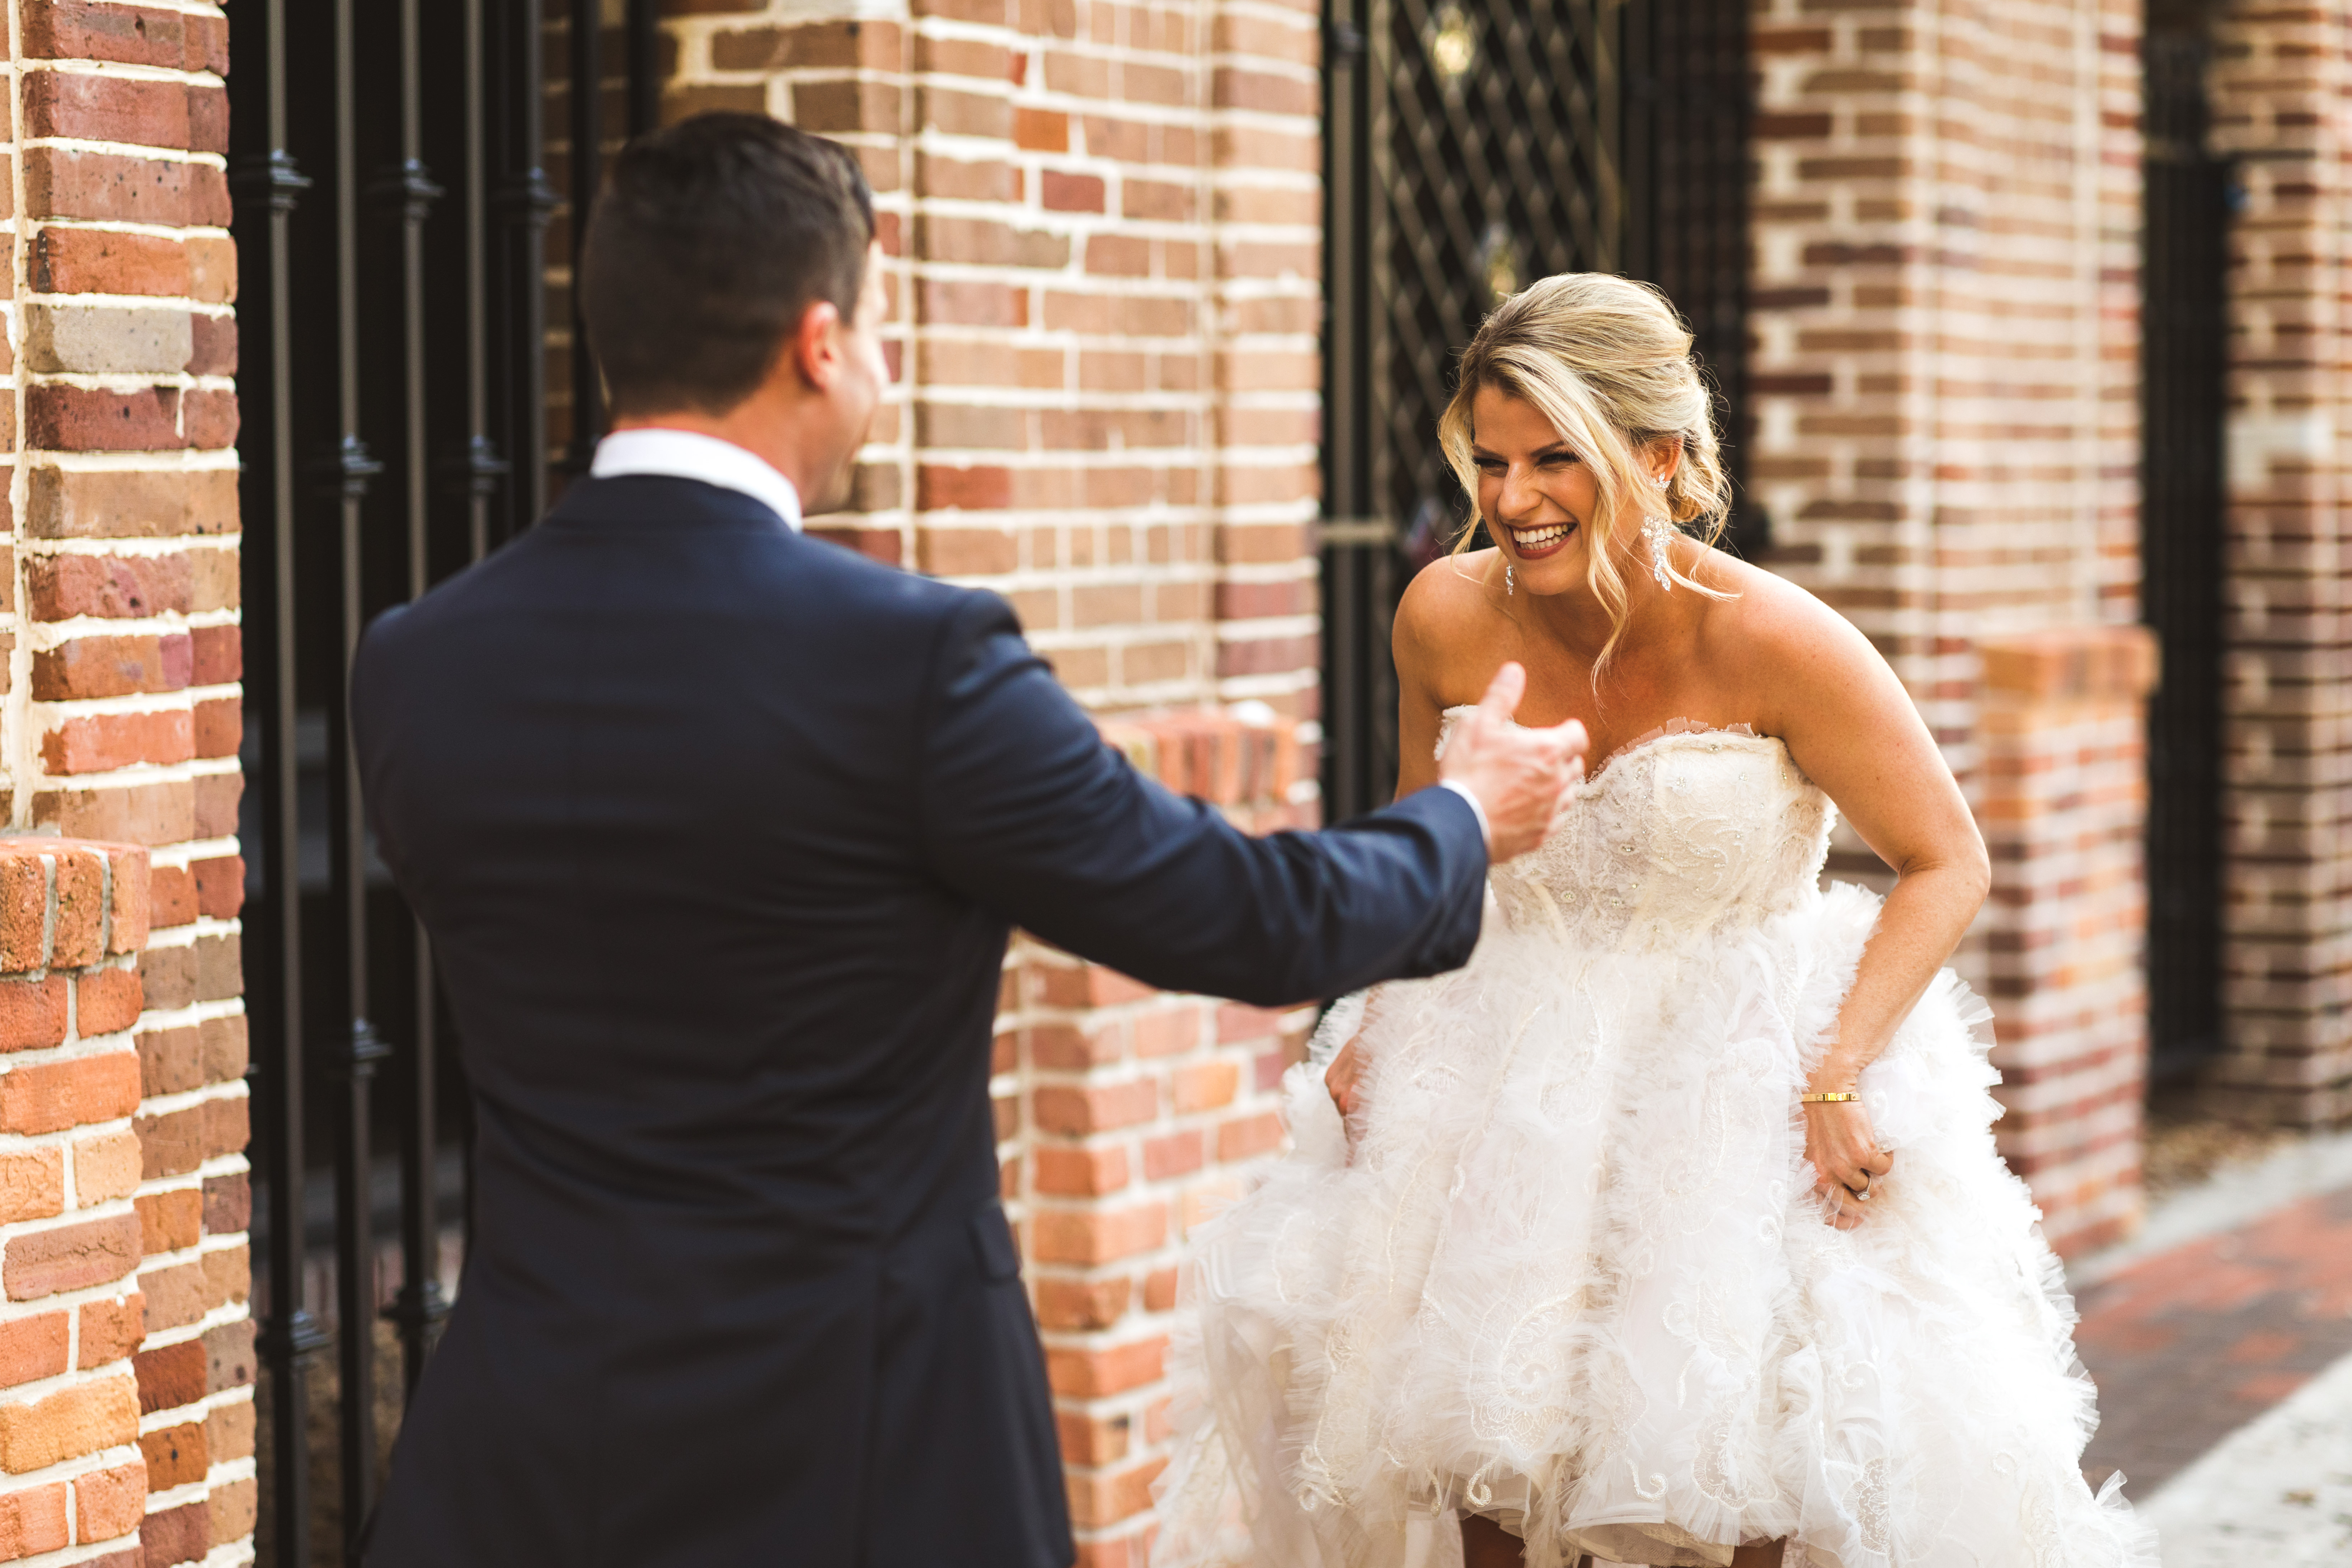 Fun Tampa Bay Bride and Groom Outdoor First Look Wedding Portrait   Wedding Dress Shop Isabel O'Neil Bridal Collection